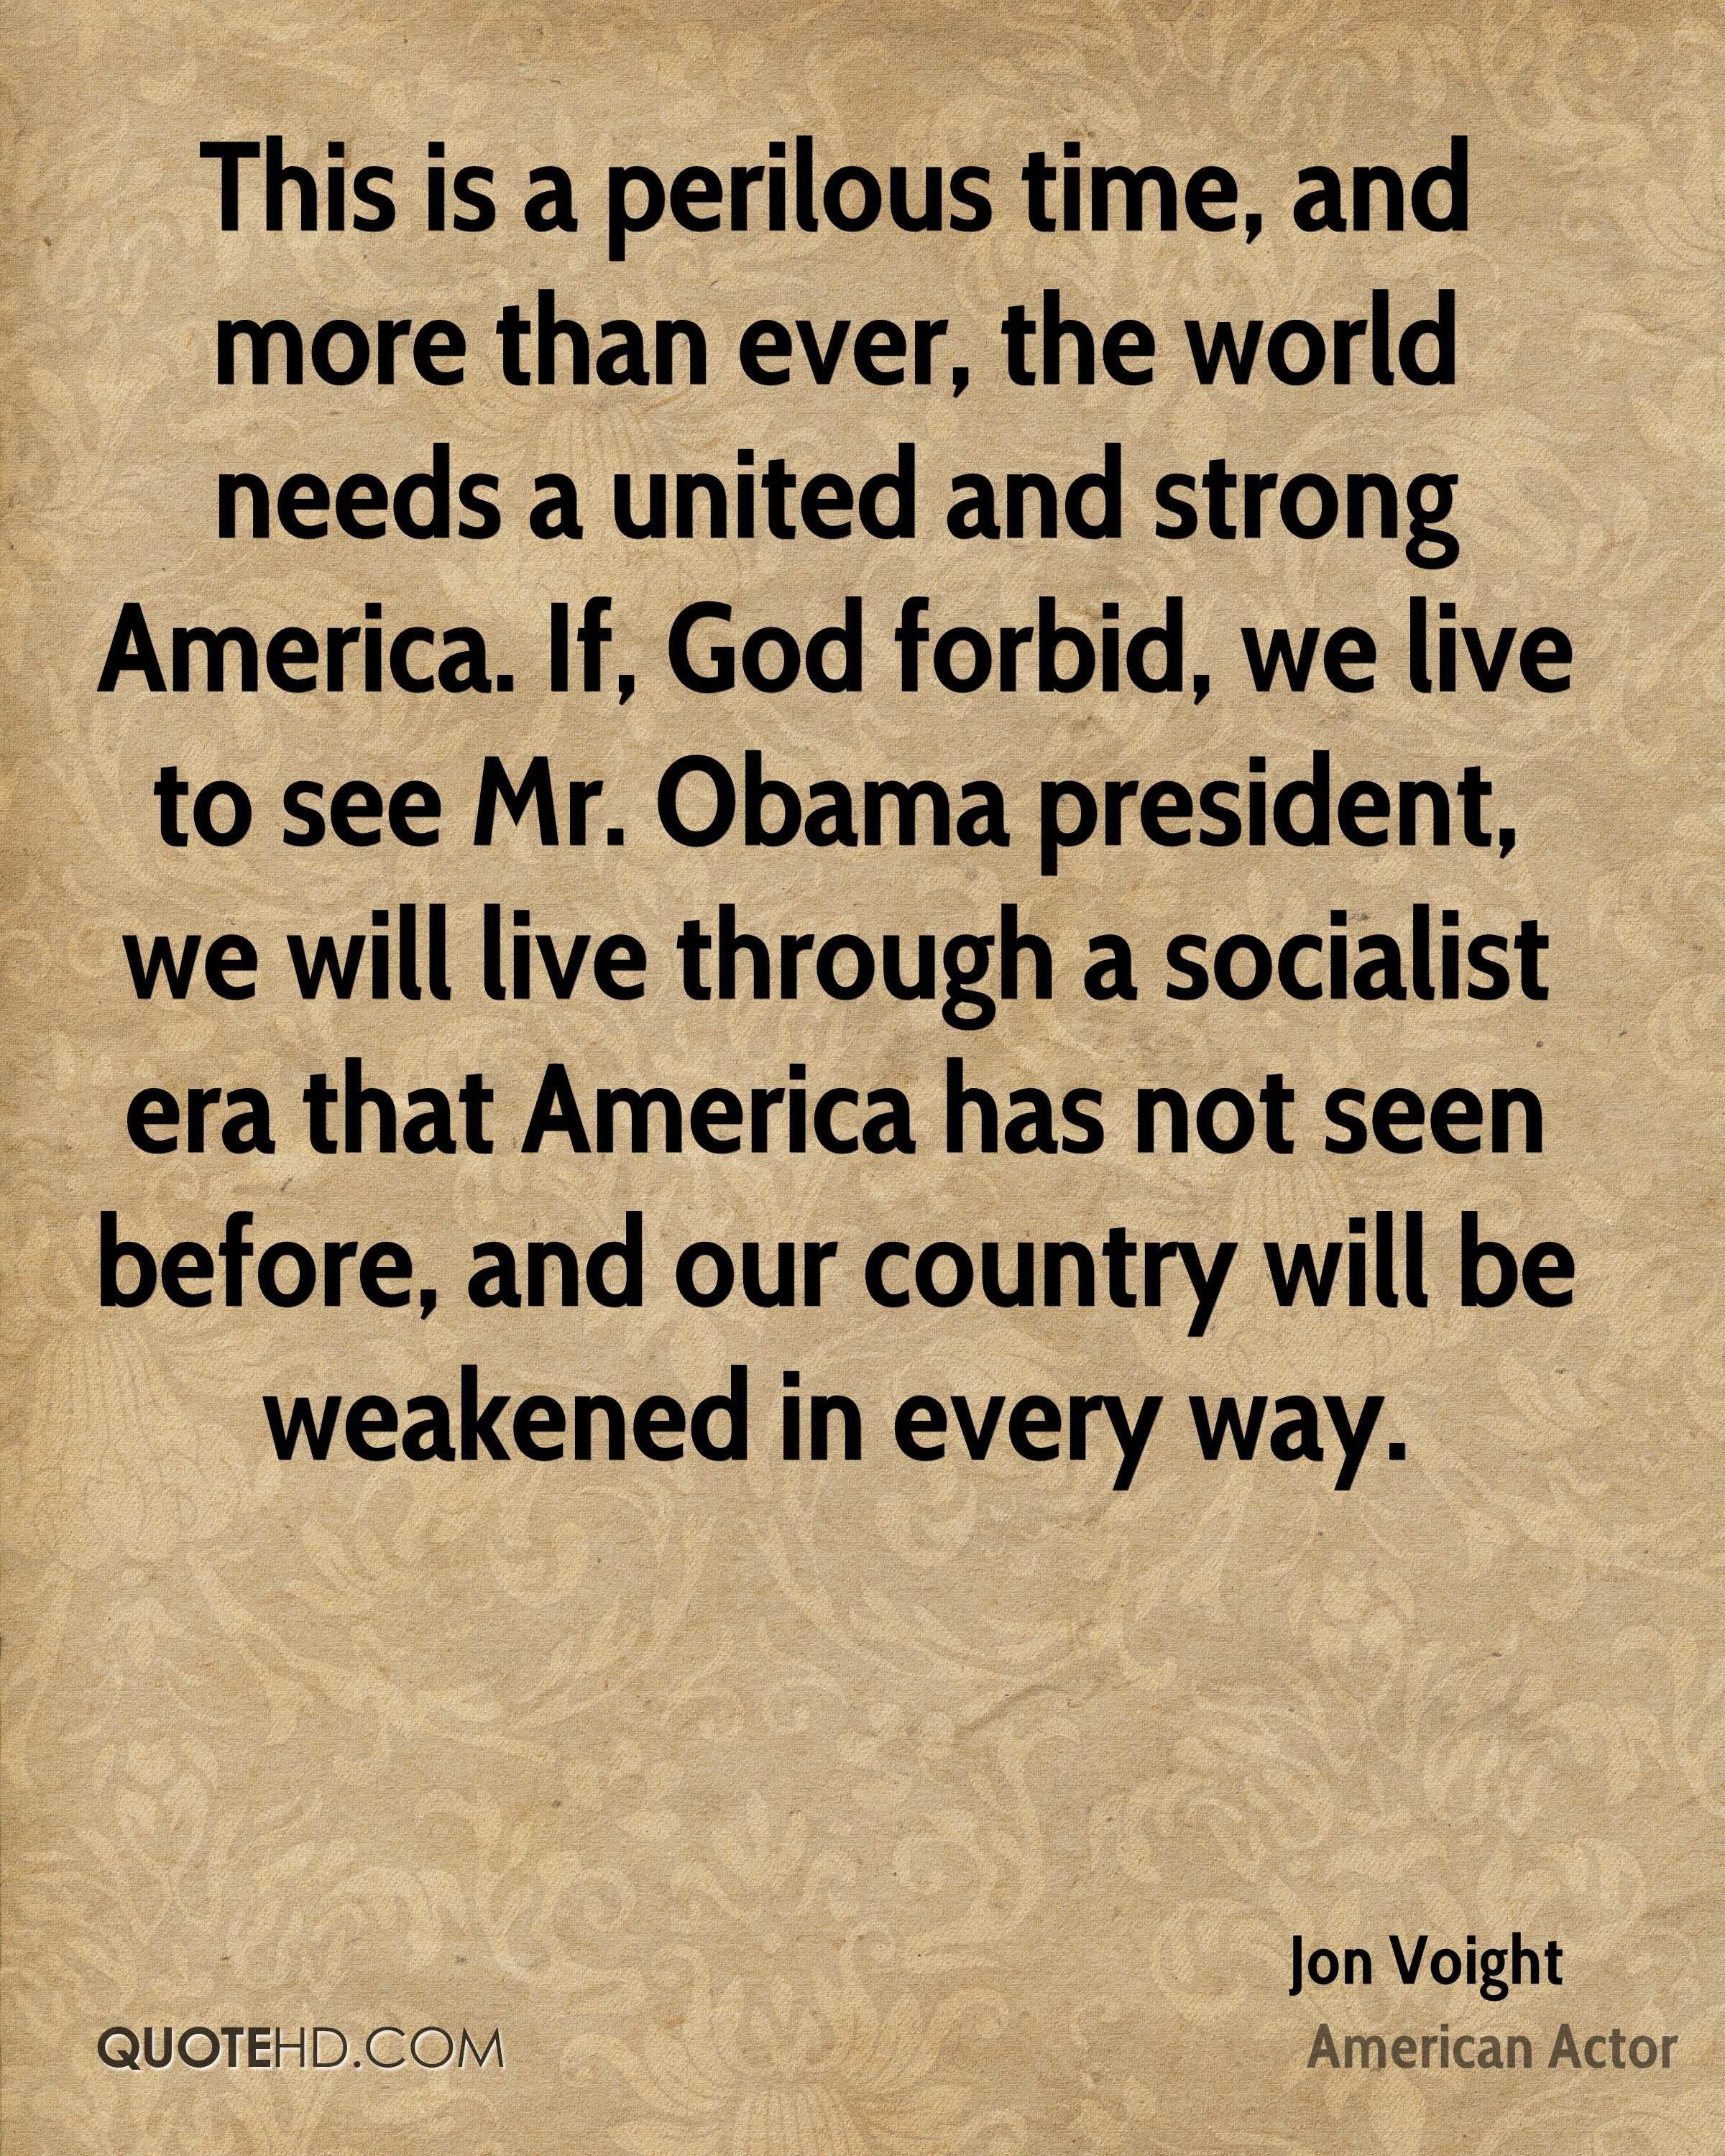 This is a perilous time, and more than ever, the world needs a united and strong America. If, God forbid, we live to see Mr. Obama president, we will live through a socialist era that America has not seen before, and our country will be weakened in every way.